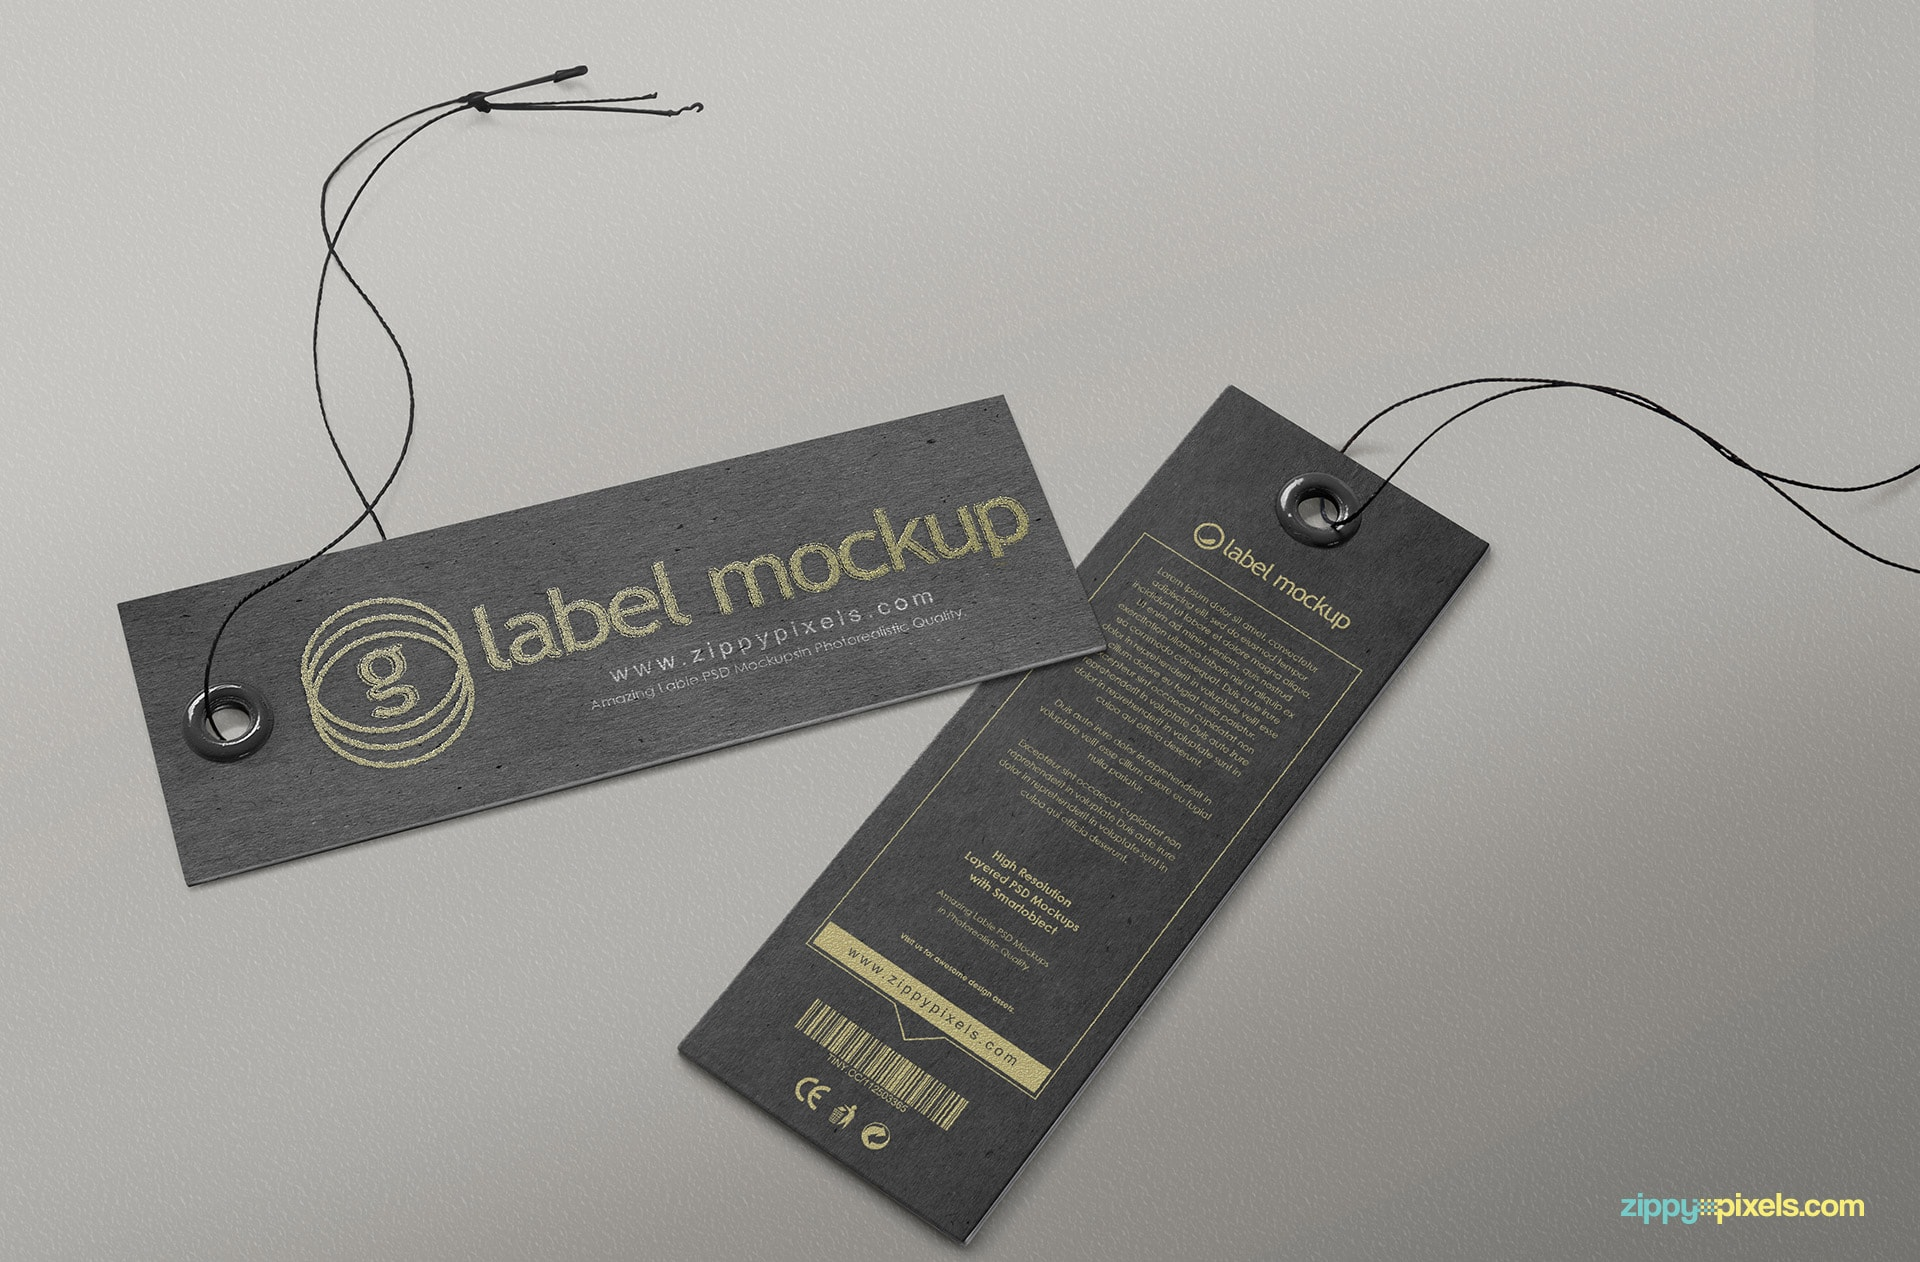 The best label mockup collection.